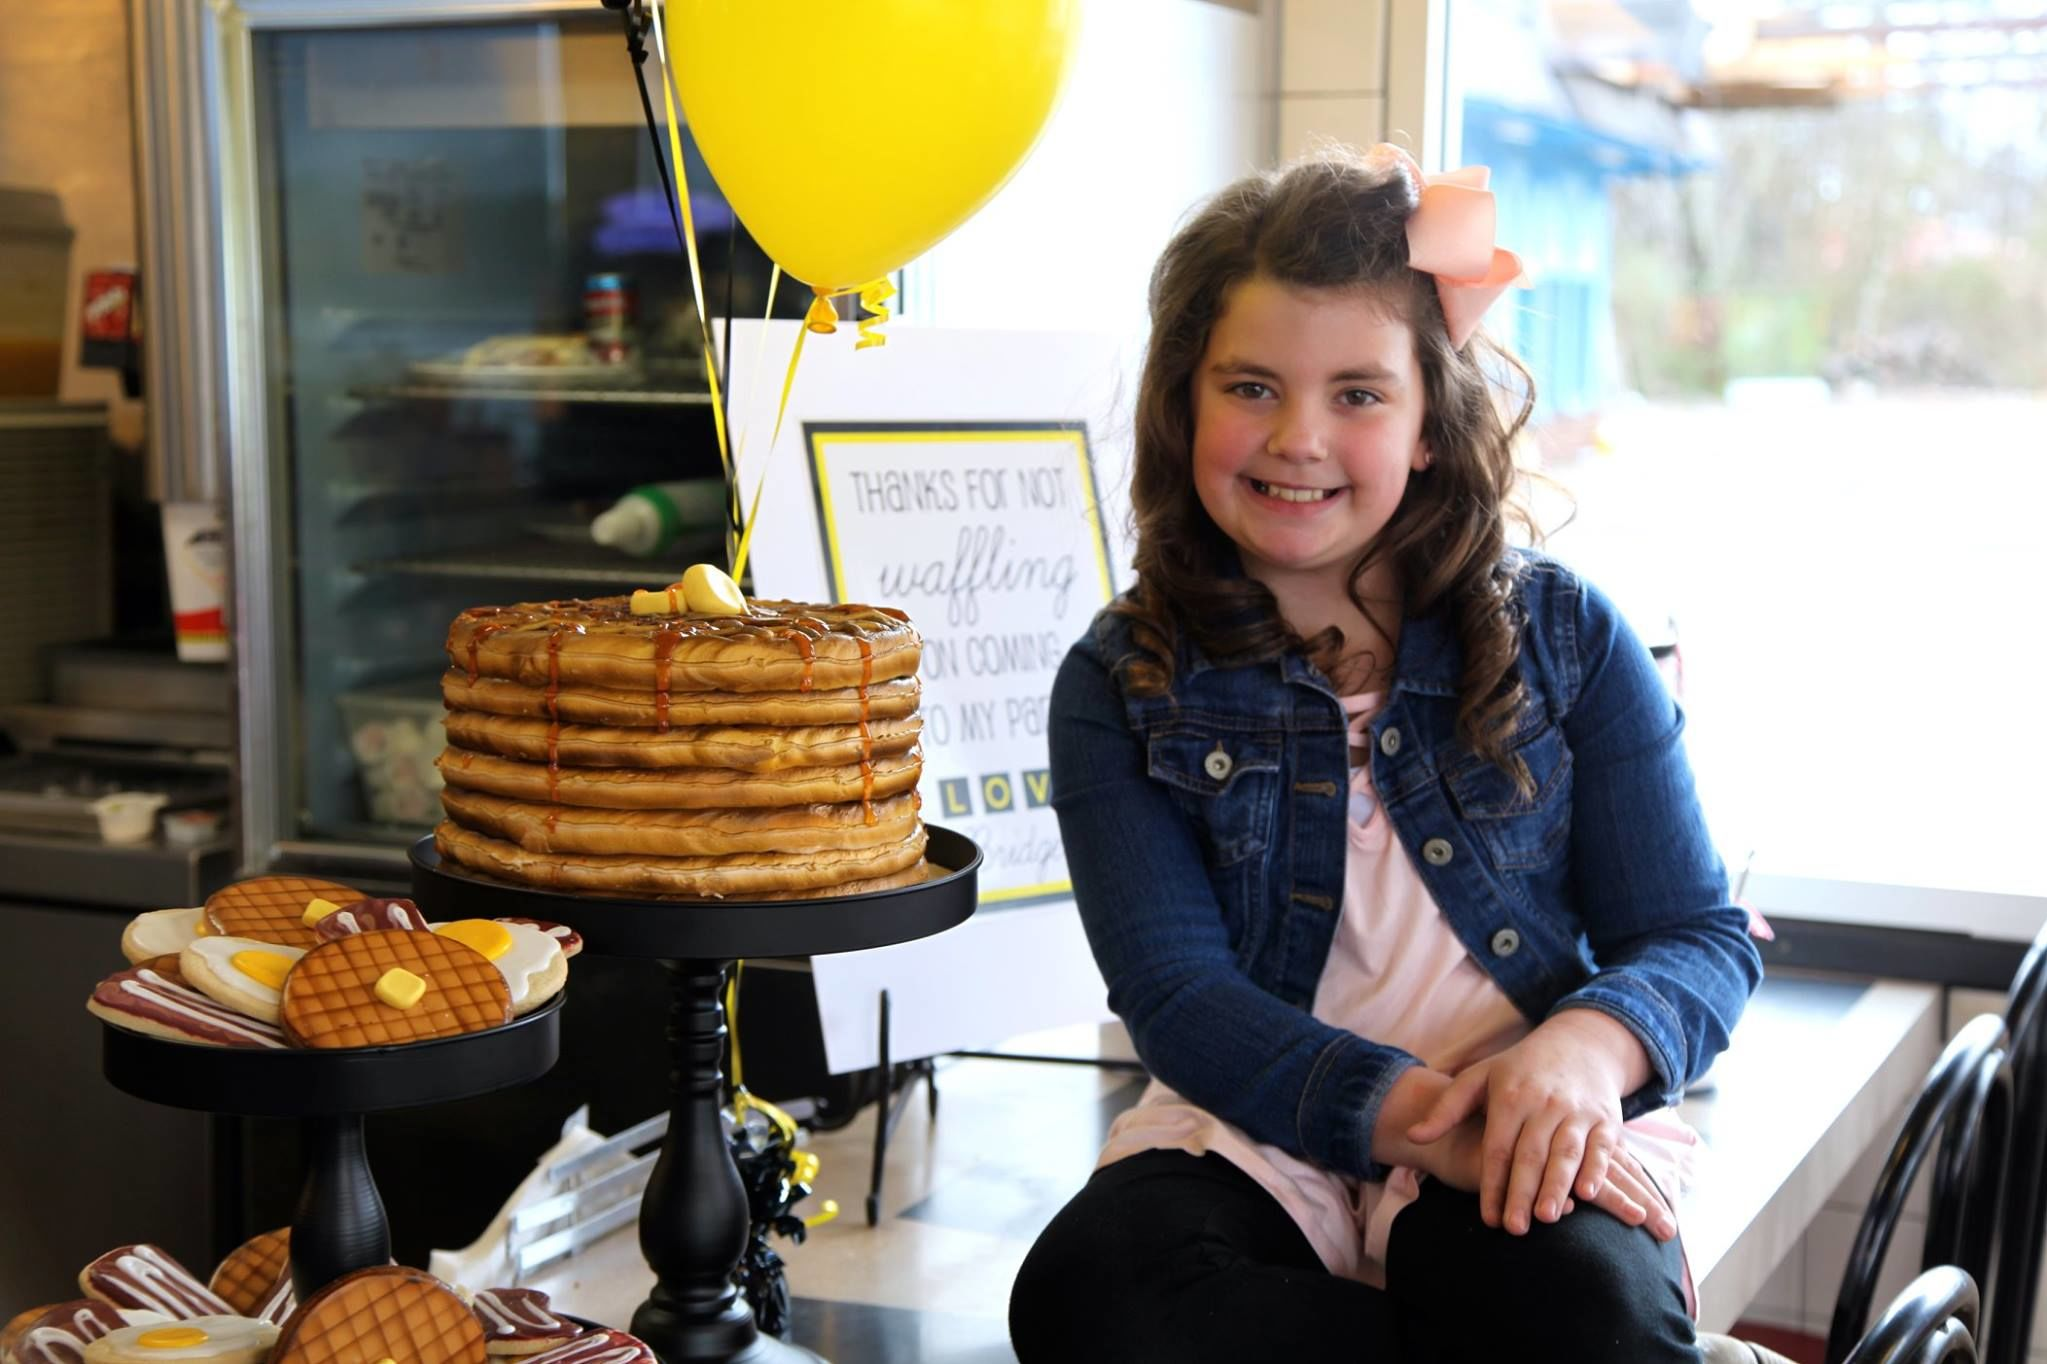 One Tennessee Kiddo Just Had the Most Epic 9th Birthday Party at Waffle House